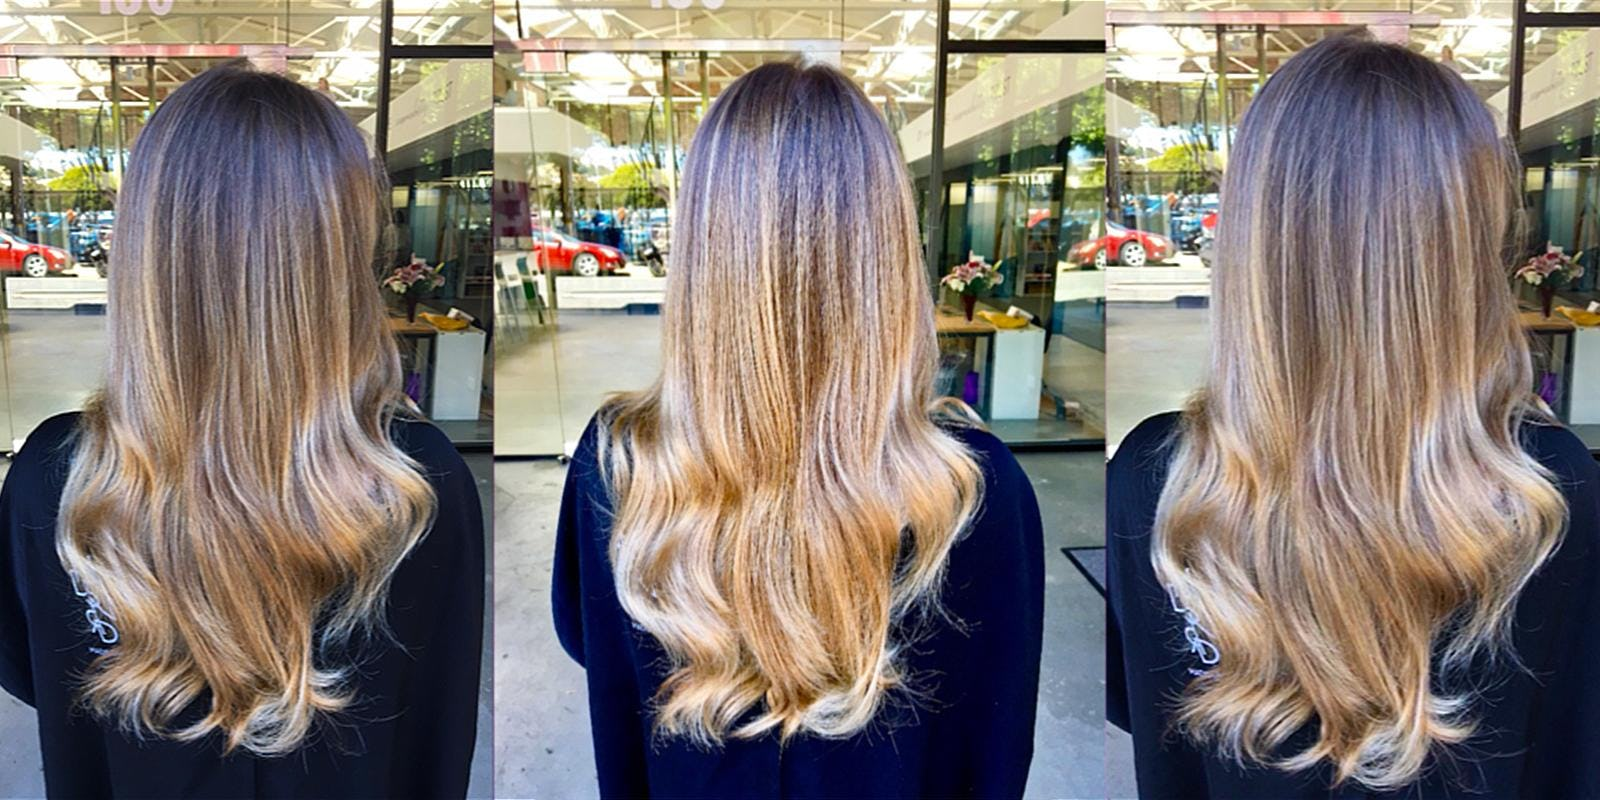 Balayage vs. Foils the Great Highlight Debate